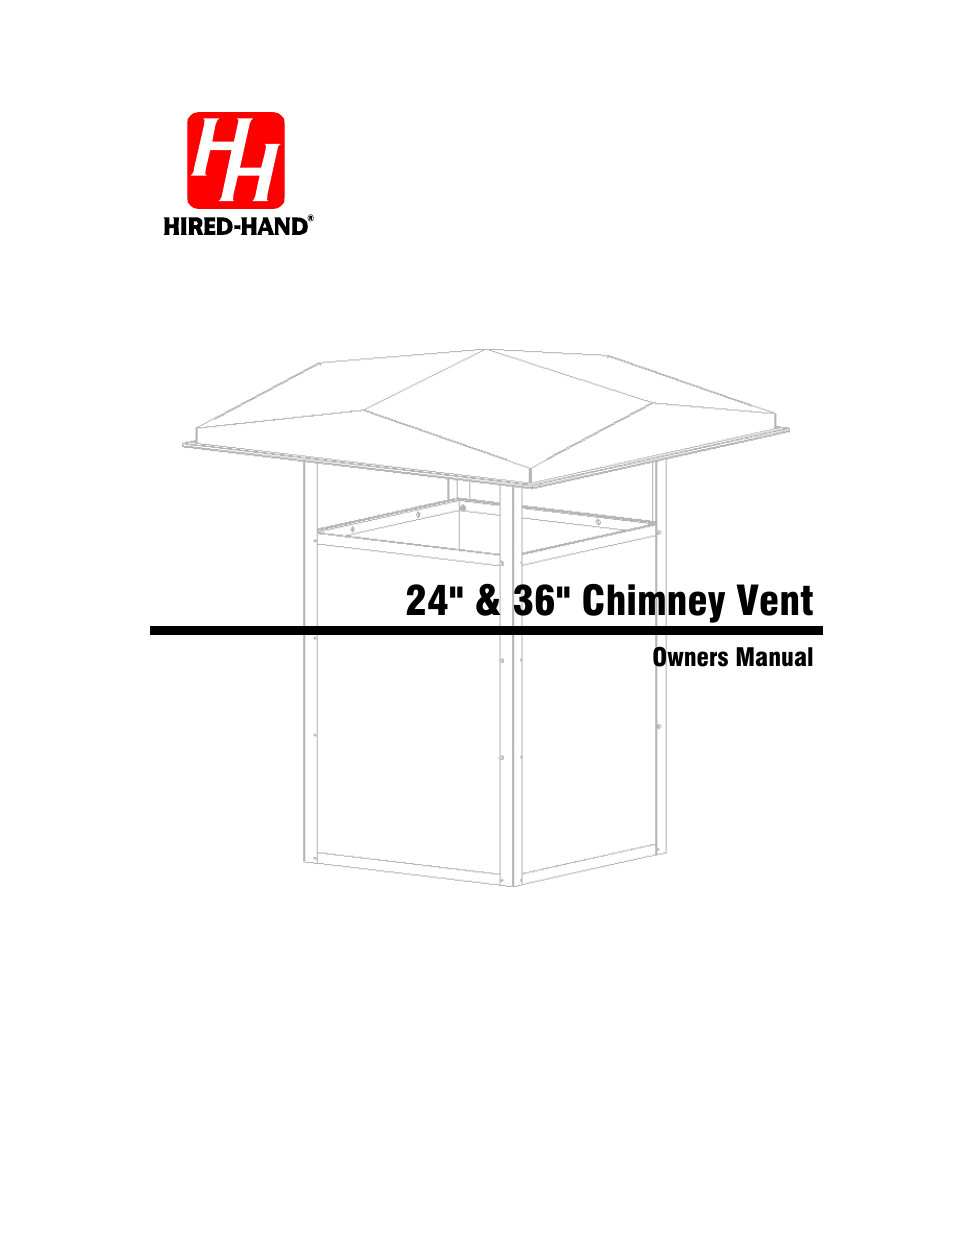 Hired-Hand Baffles, Vents, & Inlets: 24 & 36 Chimney Vent